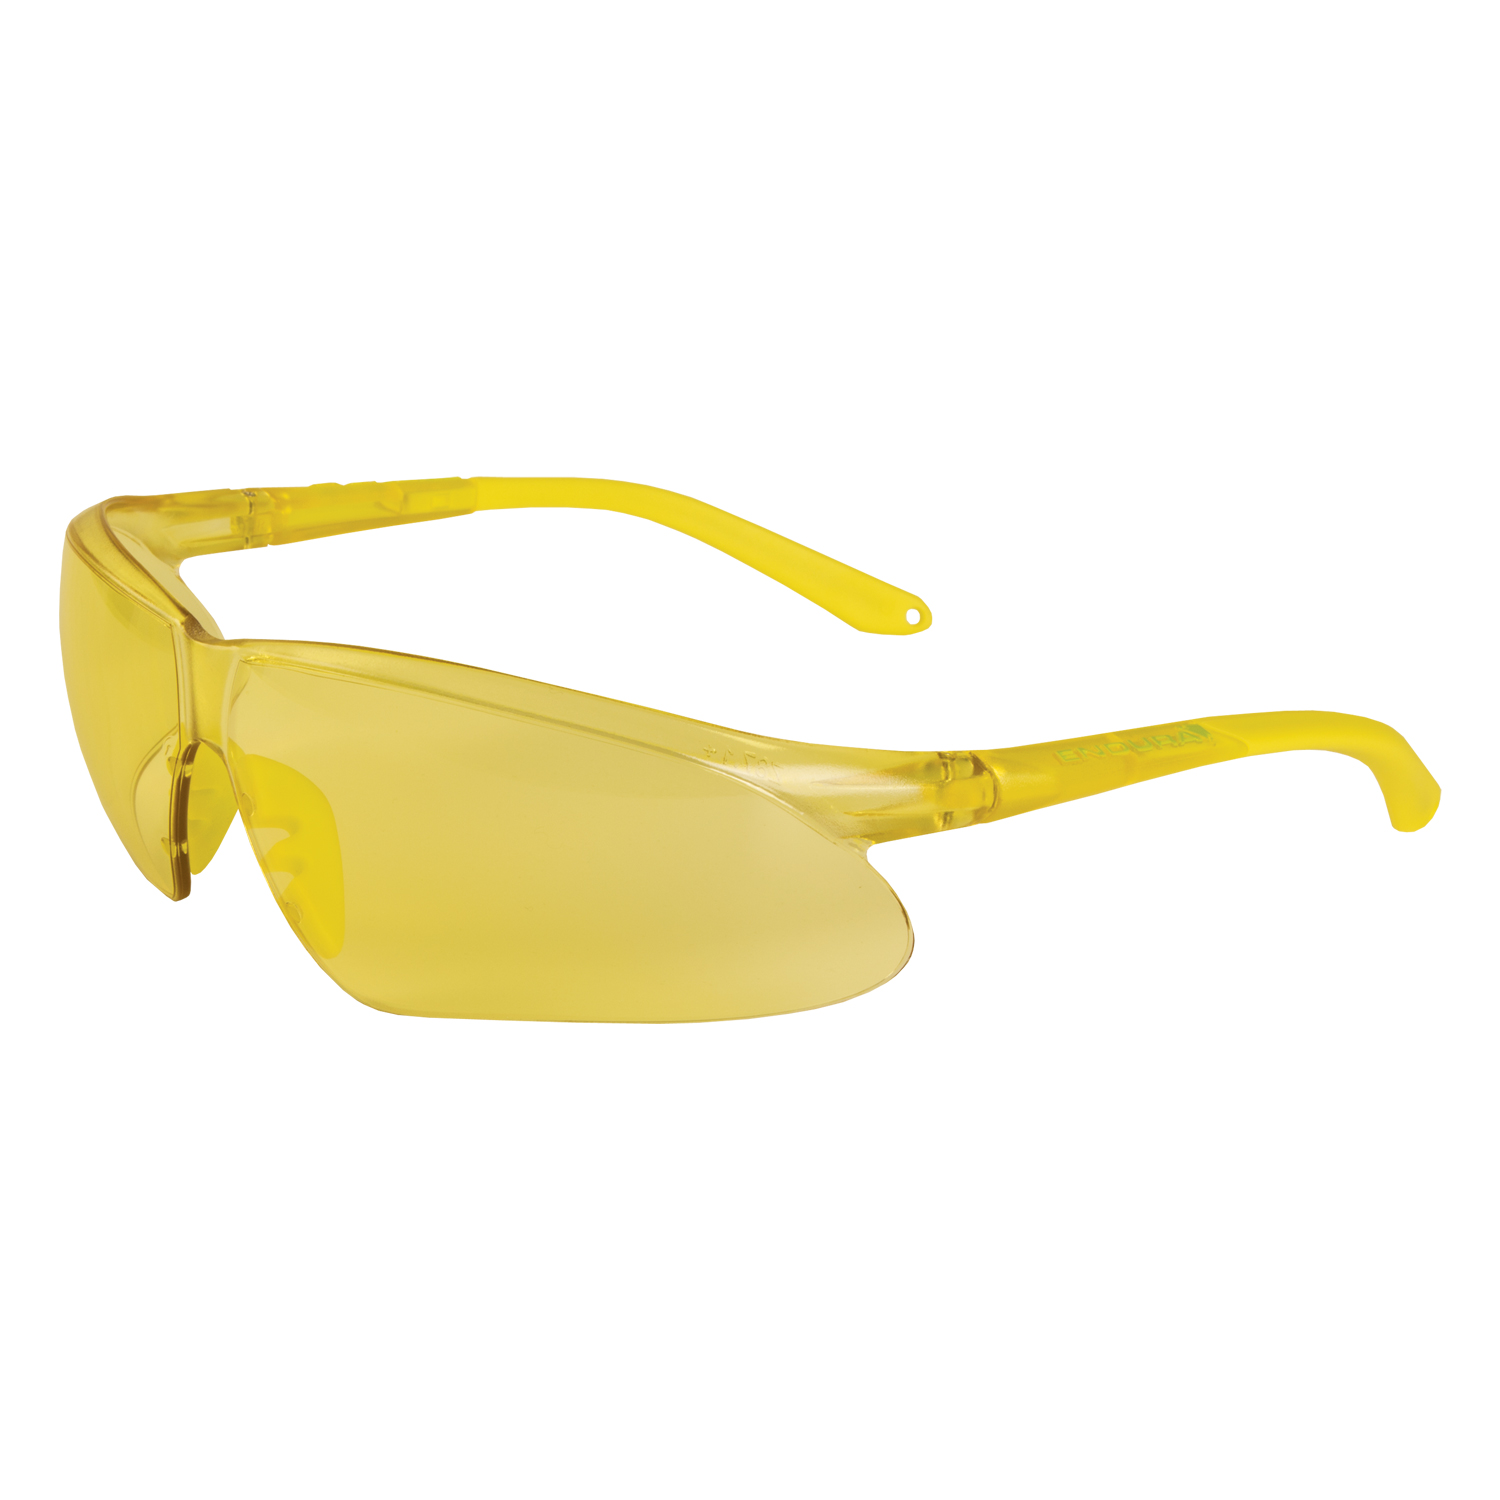 Spectral Glasses Yellow